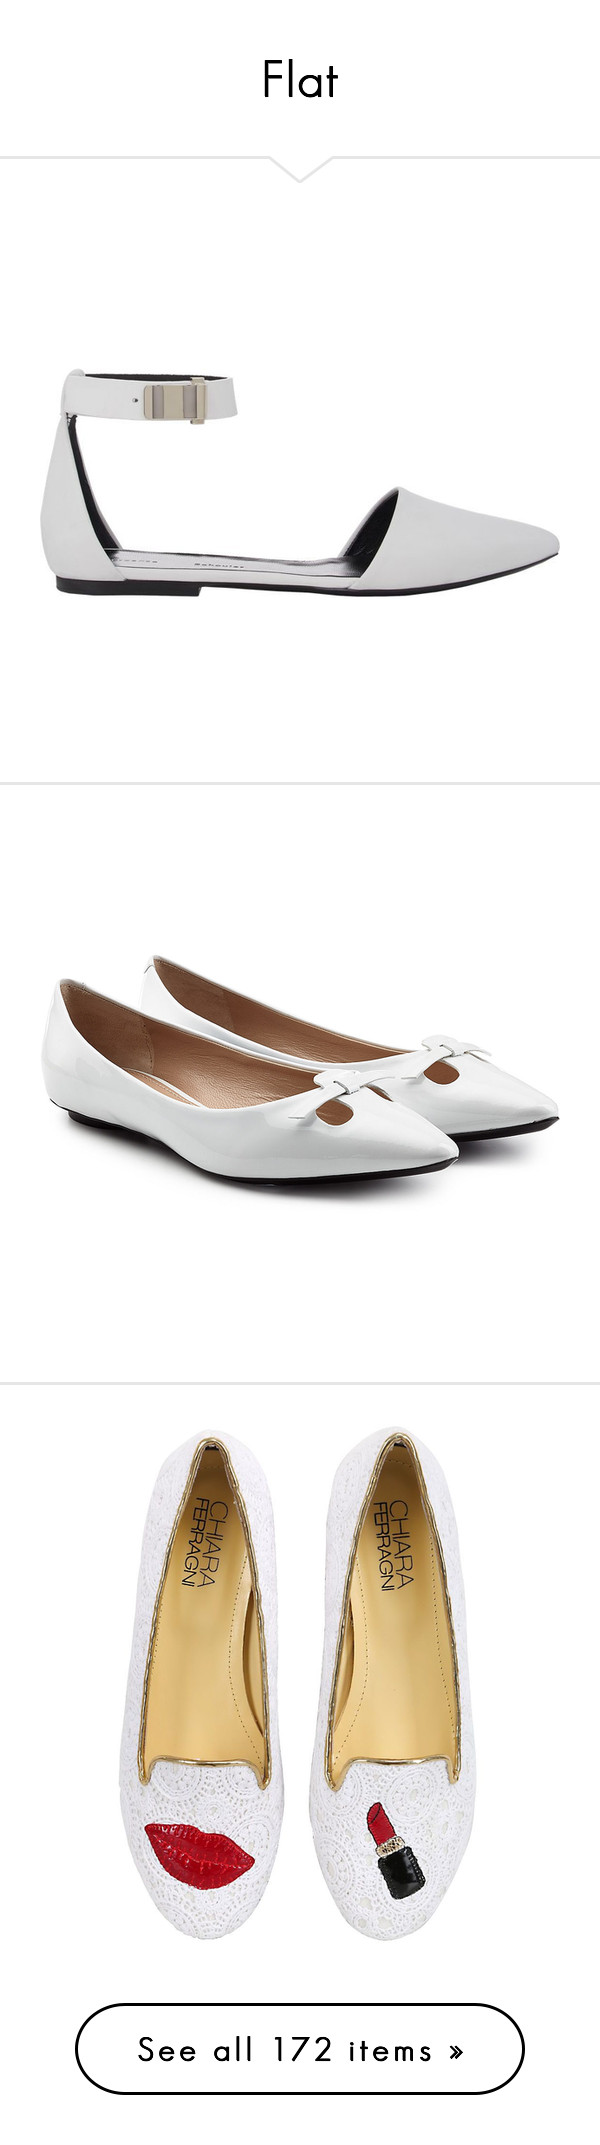 """Flat"" by alejaborrayo ❤ liked on Polyvore featuring shoes, flats, white, white ankle strap flats, d'orsay flats, pointed-toe ankle-strap flats, white flats, pointed toe flats, ballet shoes and white shoes"